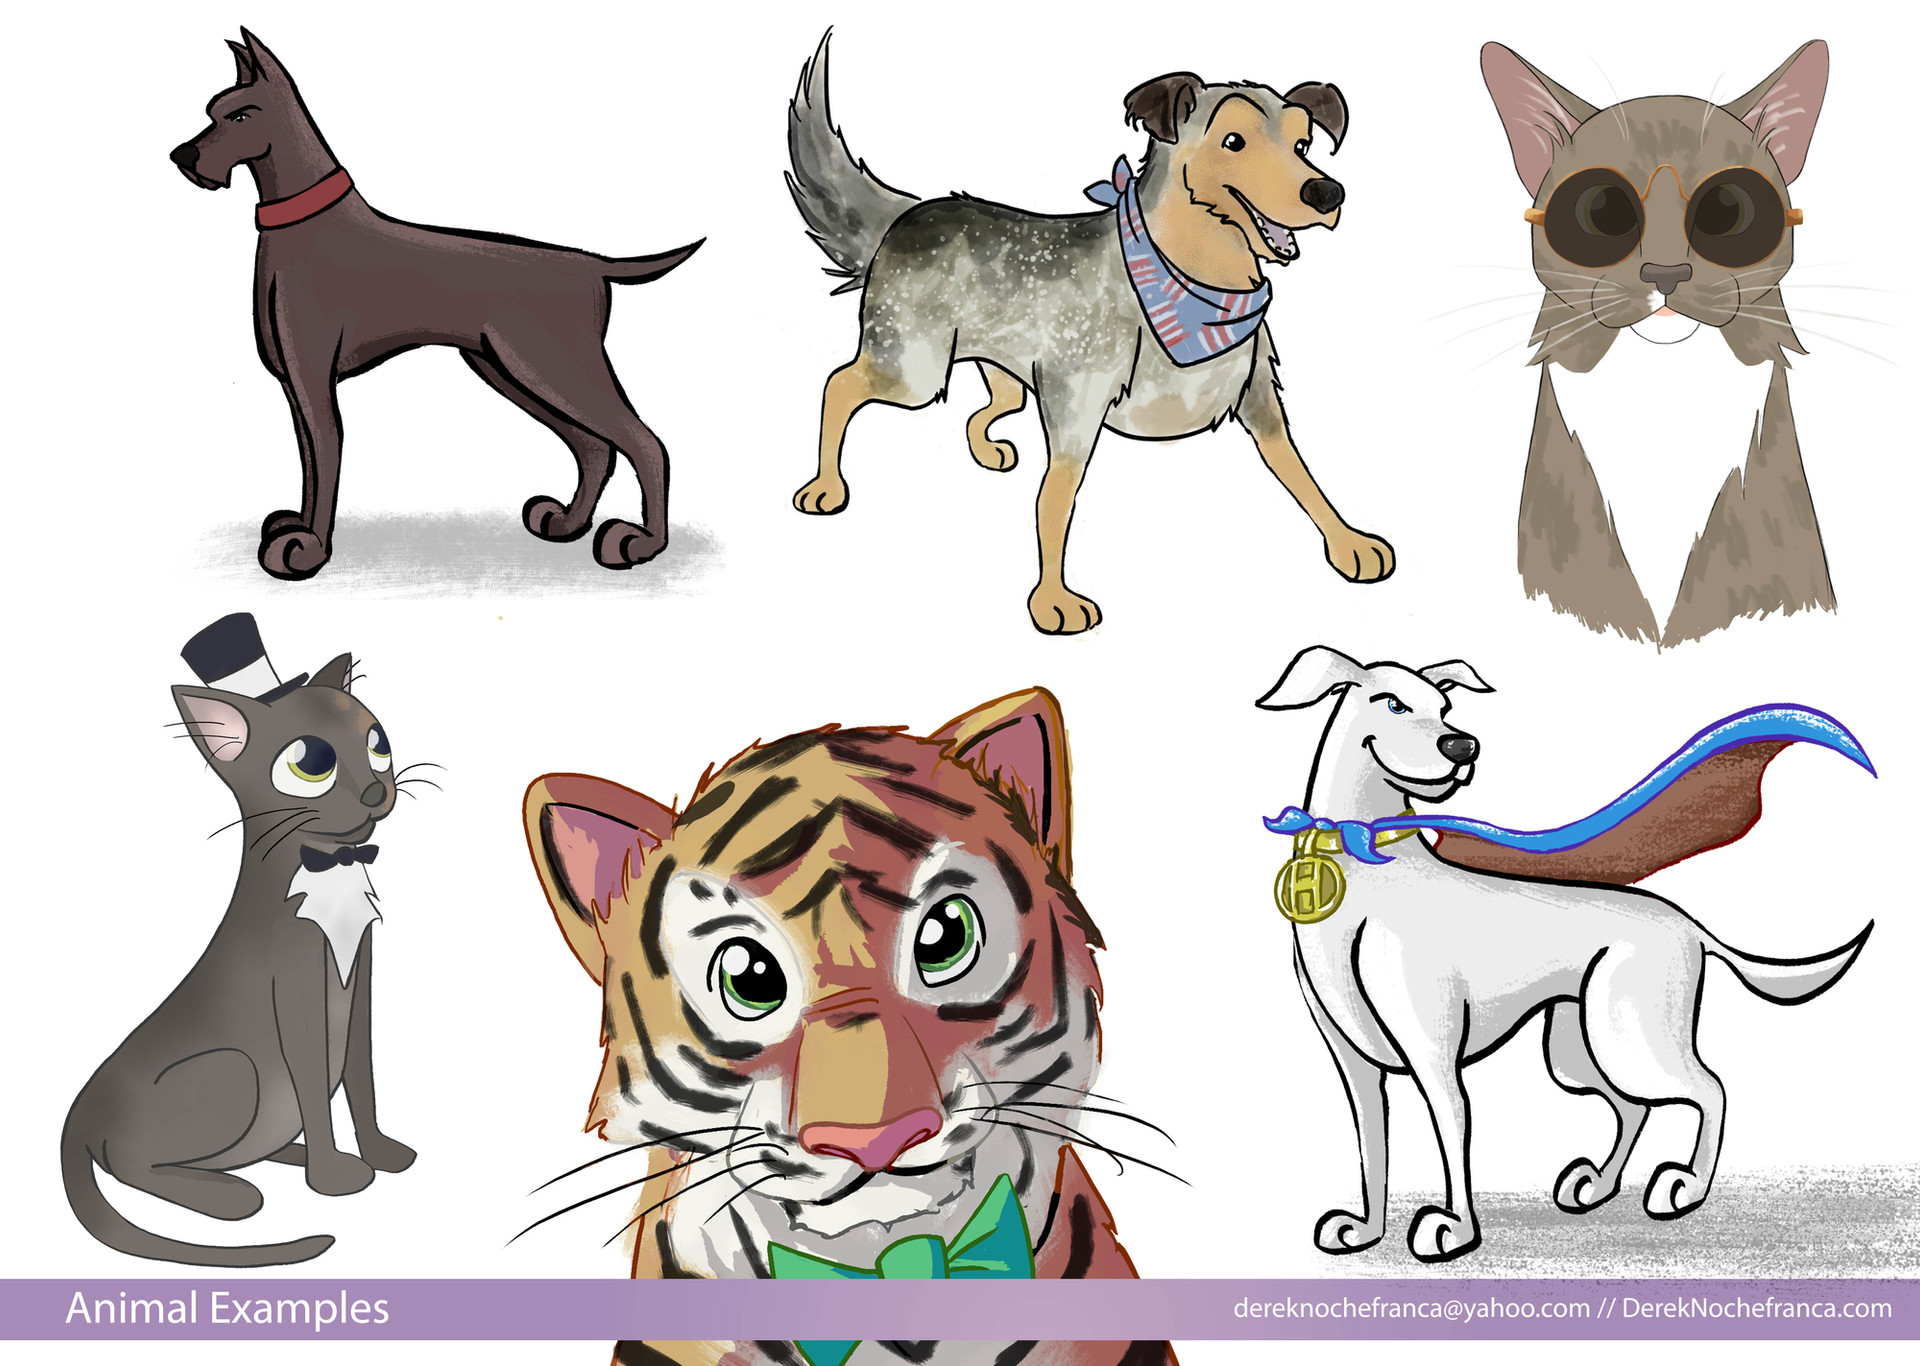 Animal Examples